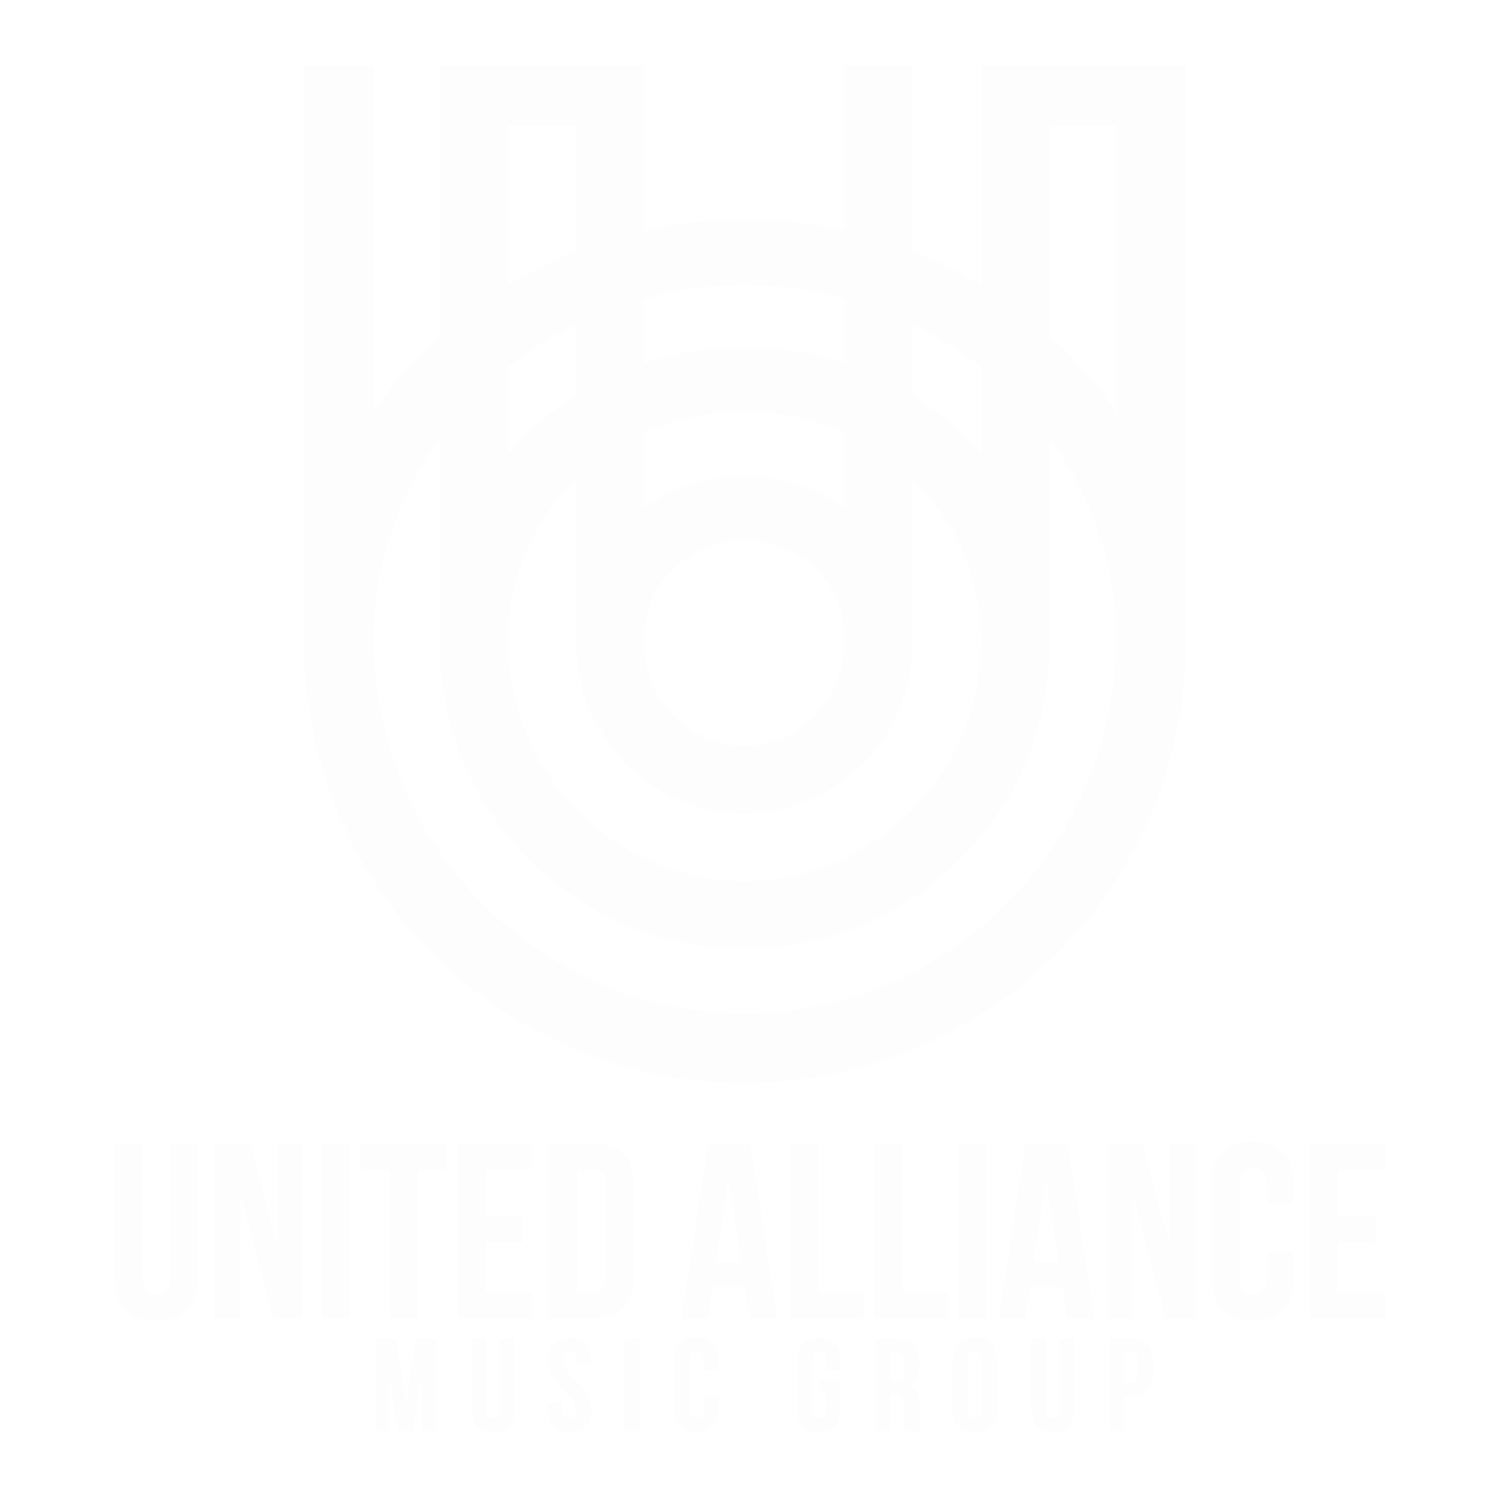 United Alliance Music Group